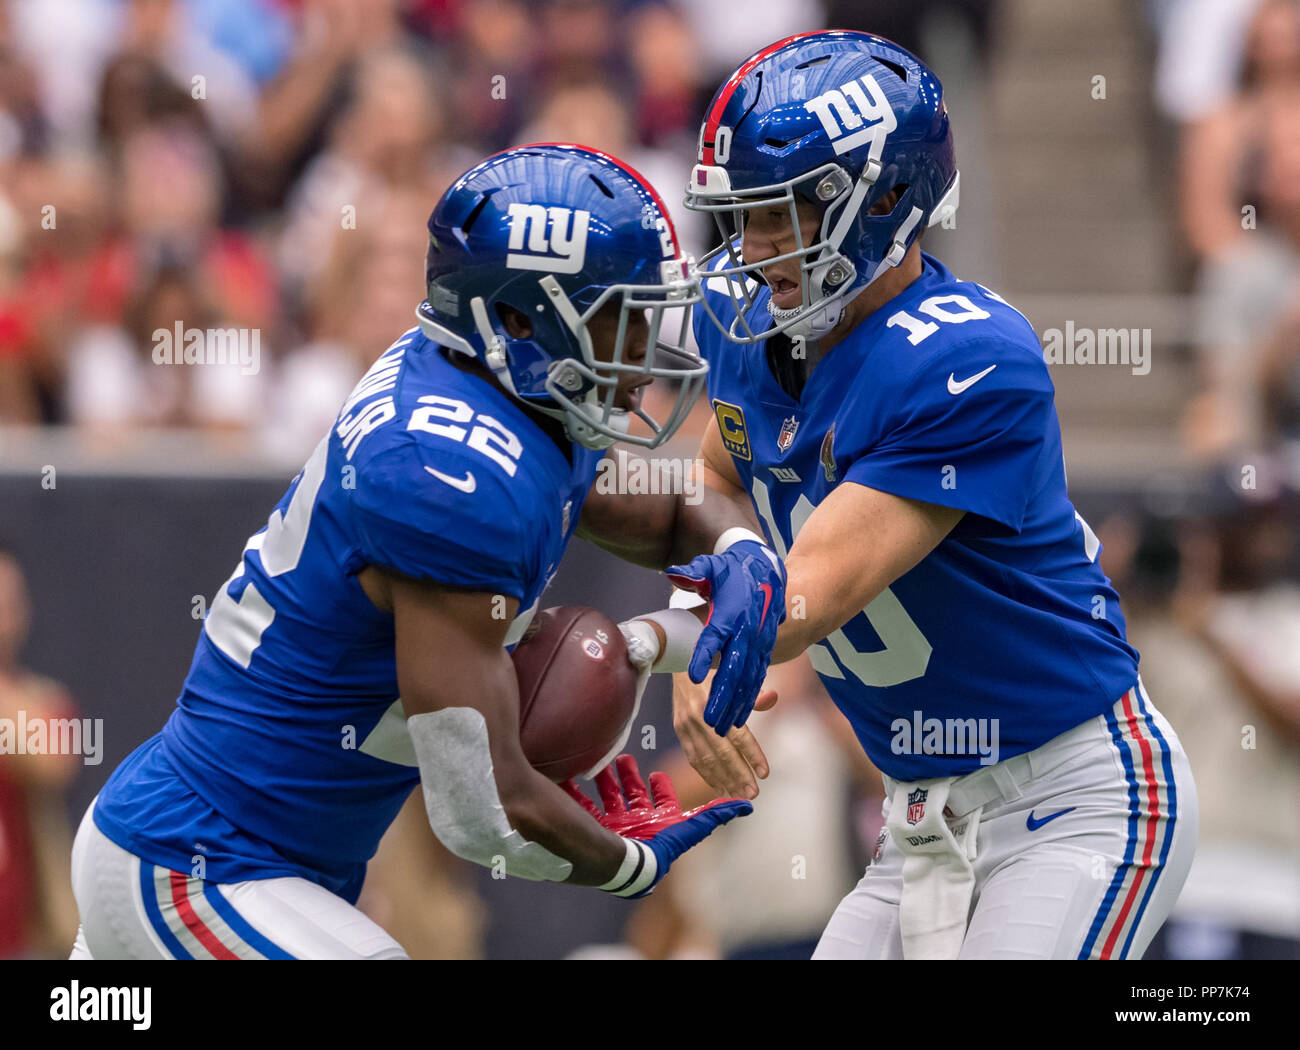 1303a22d9 New York Giants quarterback Eli Manning (10) hands off to New York Giants  running back Wayne Gallman (22) in an NFL game between the New York Giants  and the ...